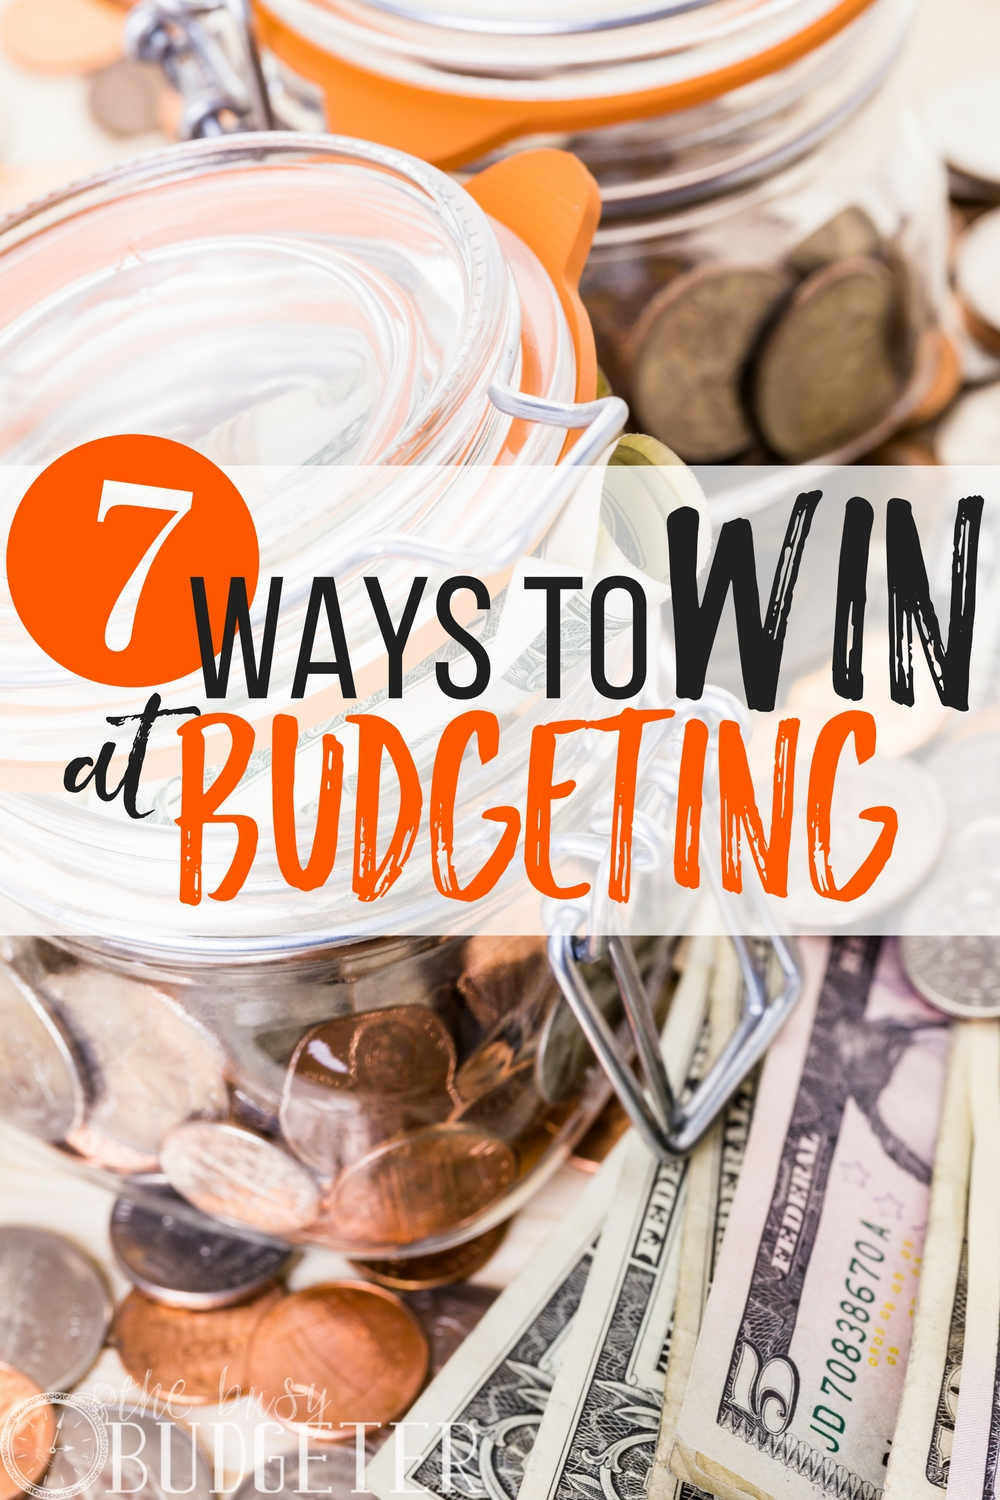 Finally, an article that gives you easy ways to win at budgeting! These simple budgeting tips have actually helped me lower my monthly expenses and stick to my budget! That's what I call a WIN!